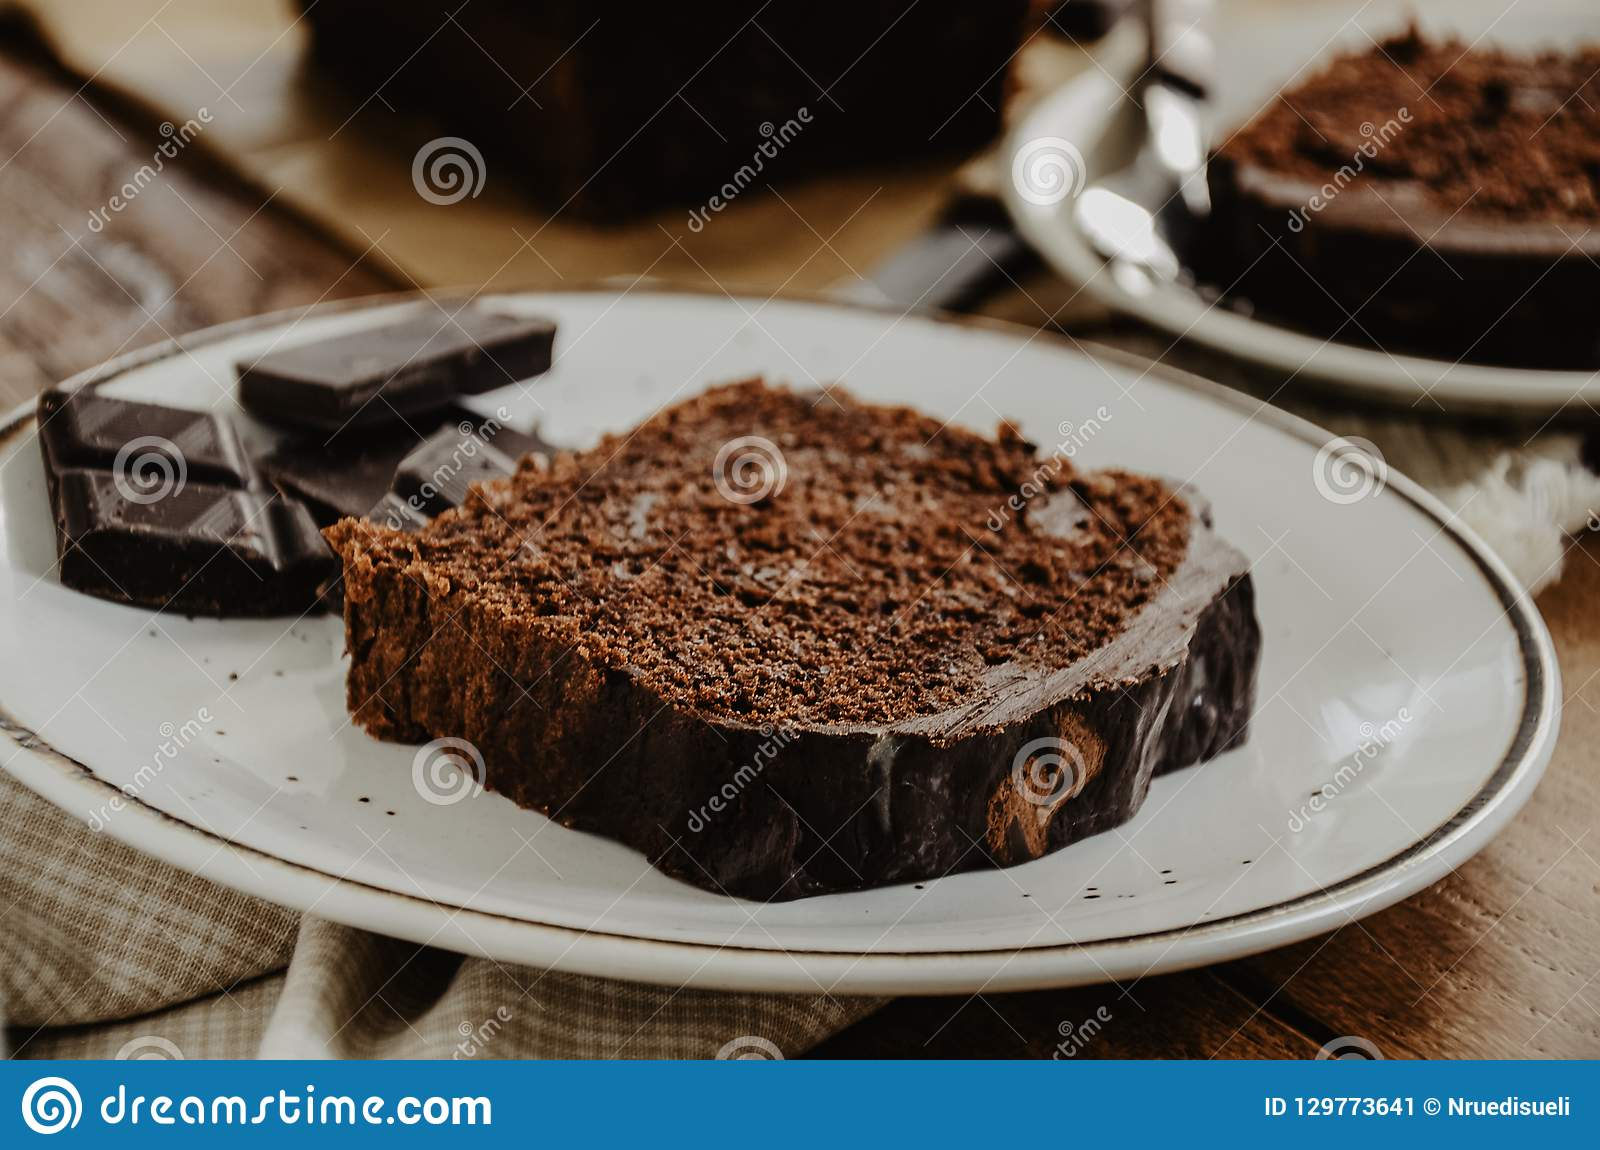 Chocolate pound cake slices on white plates. Brown toned,